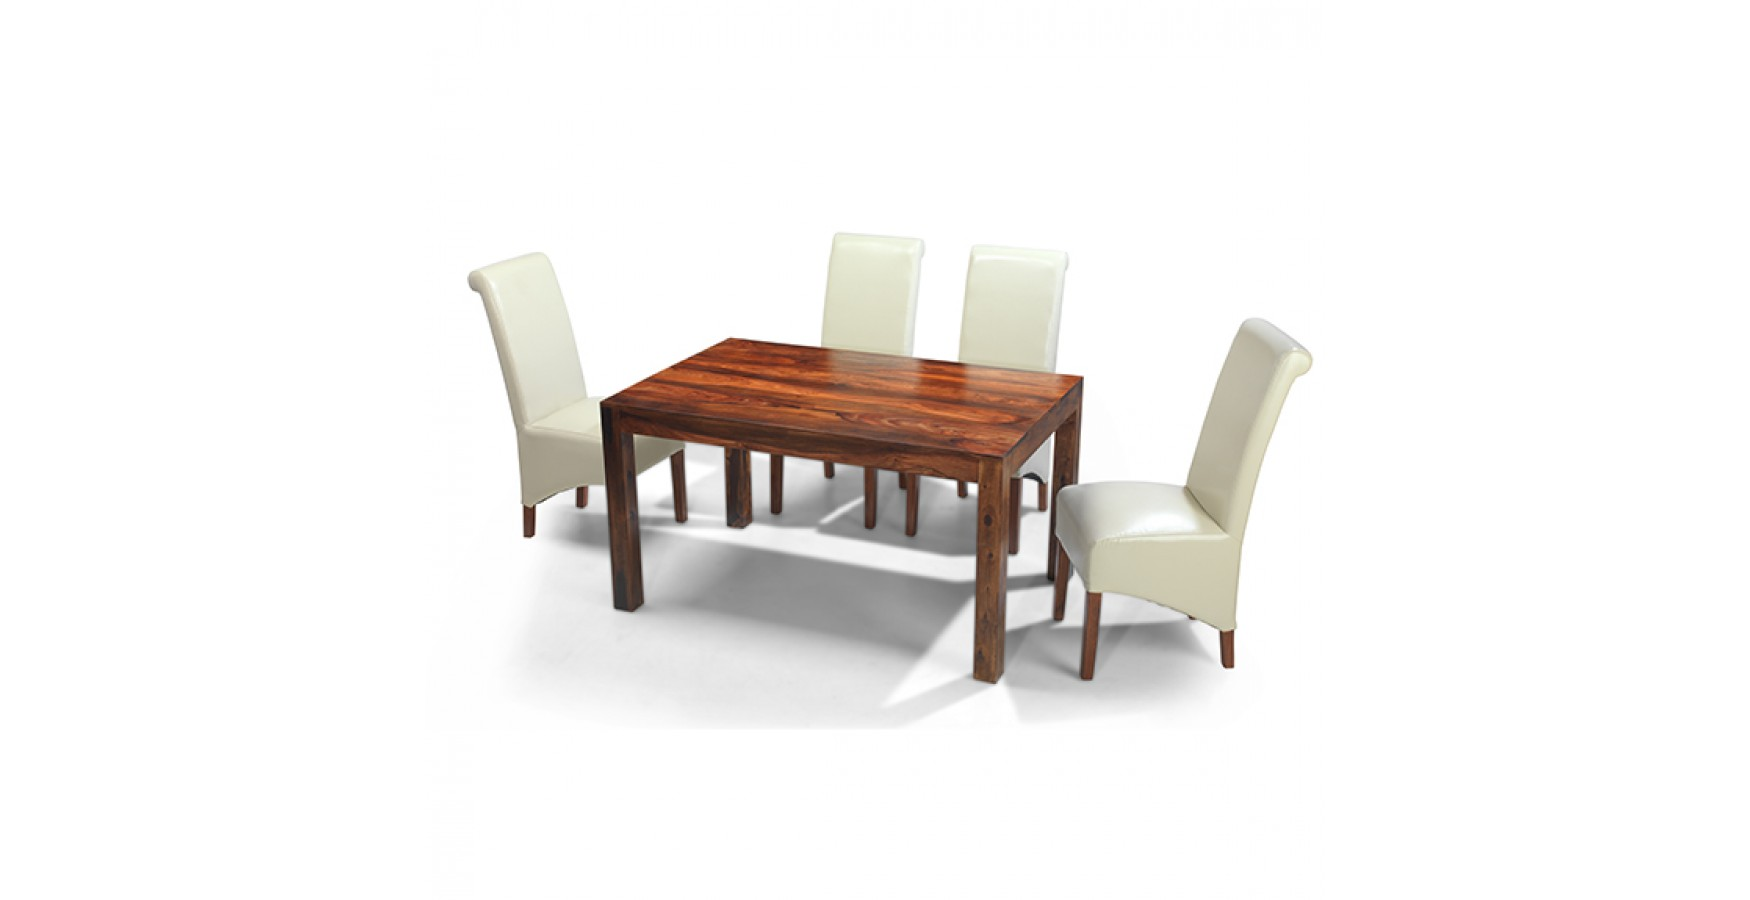 Cuba Sheesham 140 cm Dining Table and 4 Chairs - Lifestyle Furniture UK